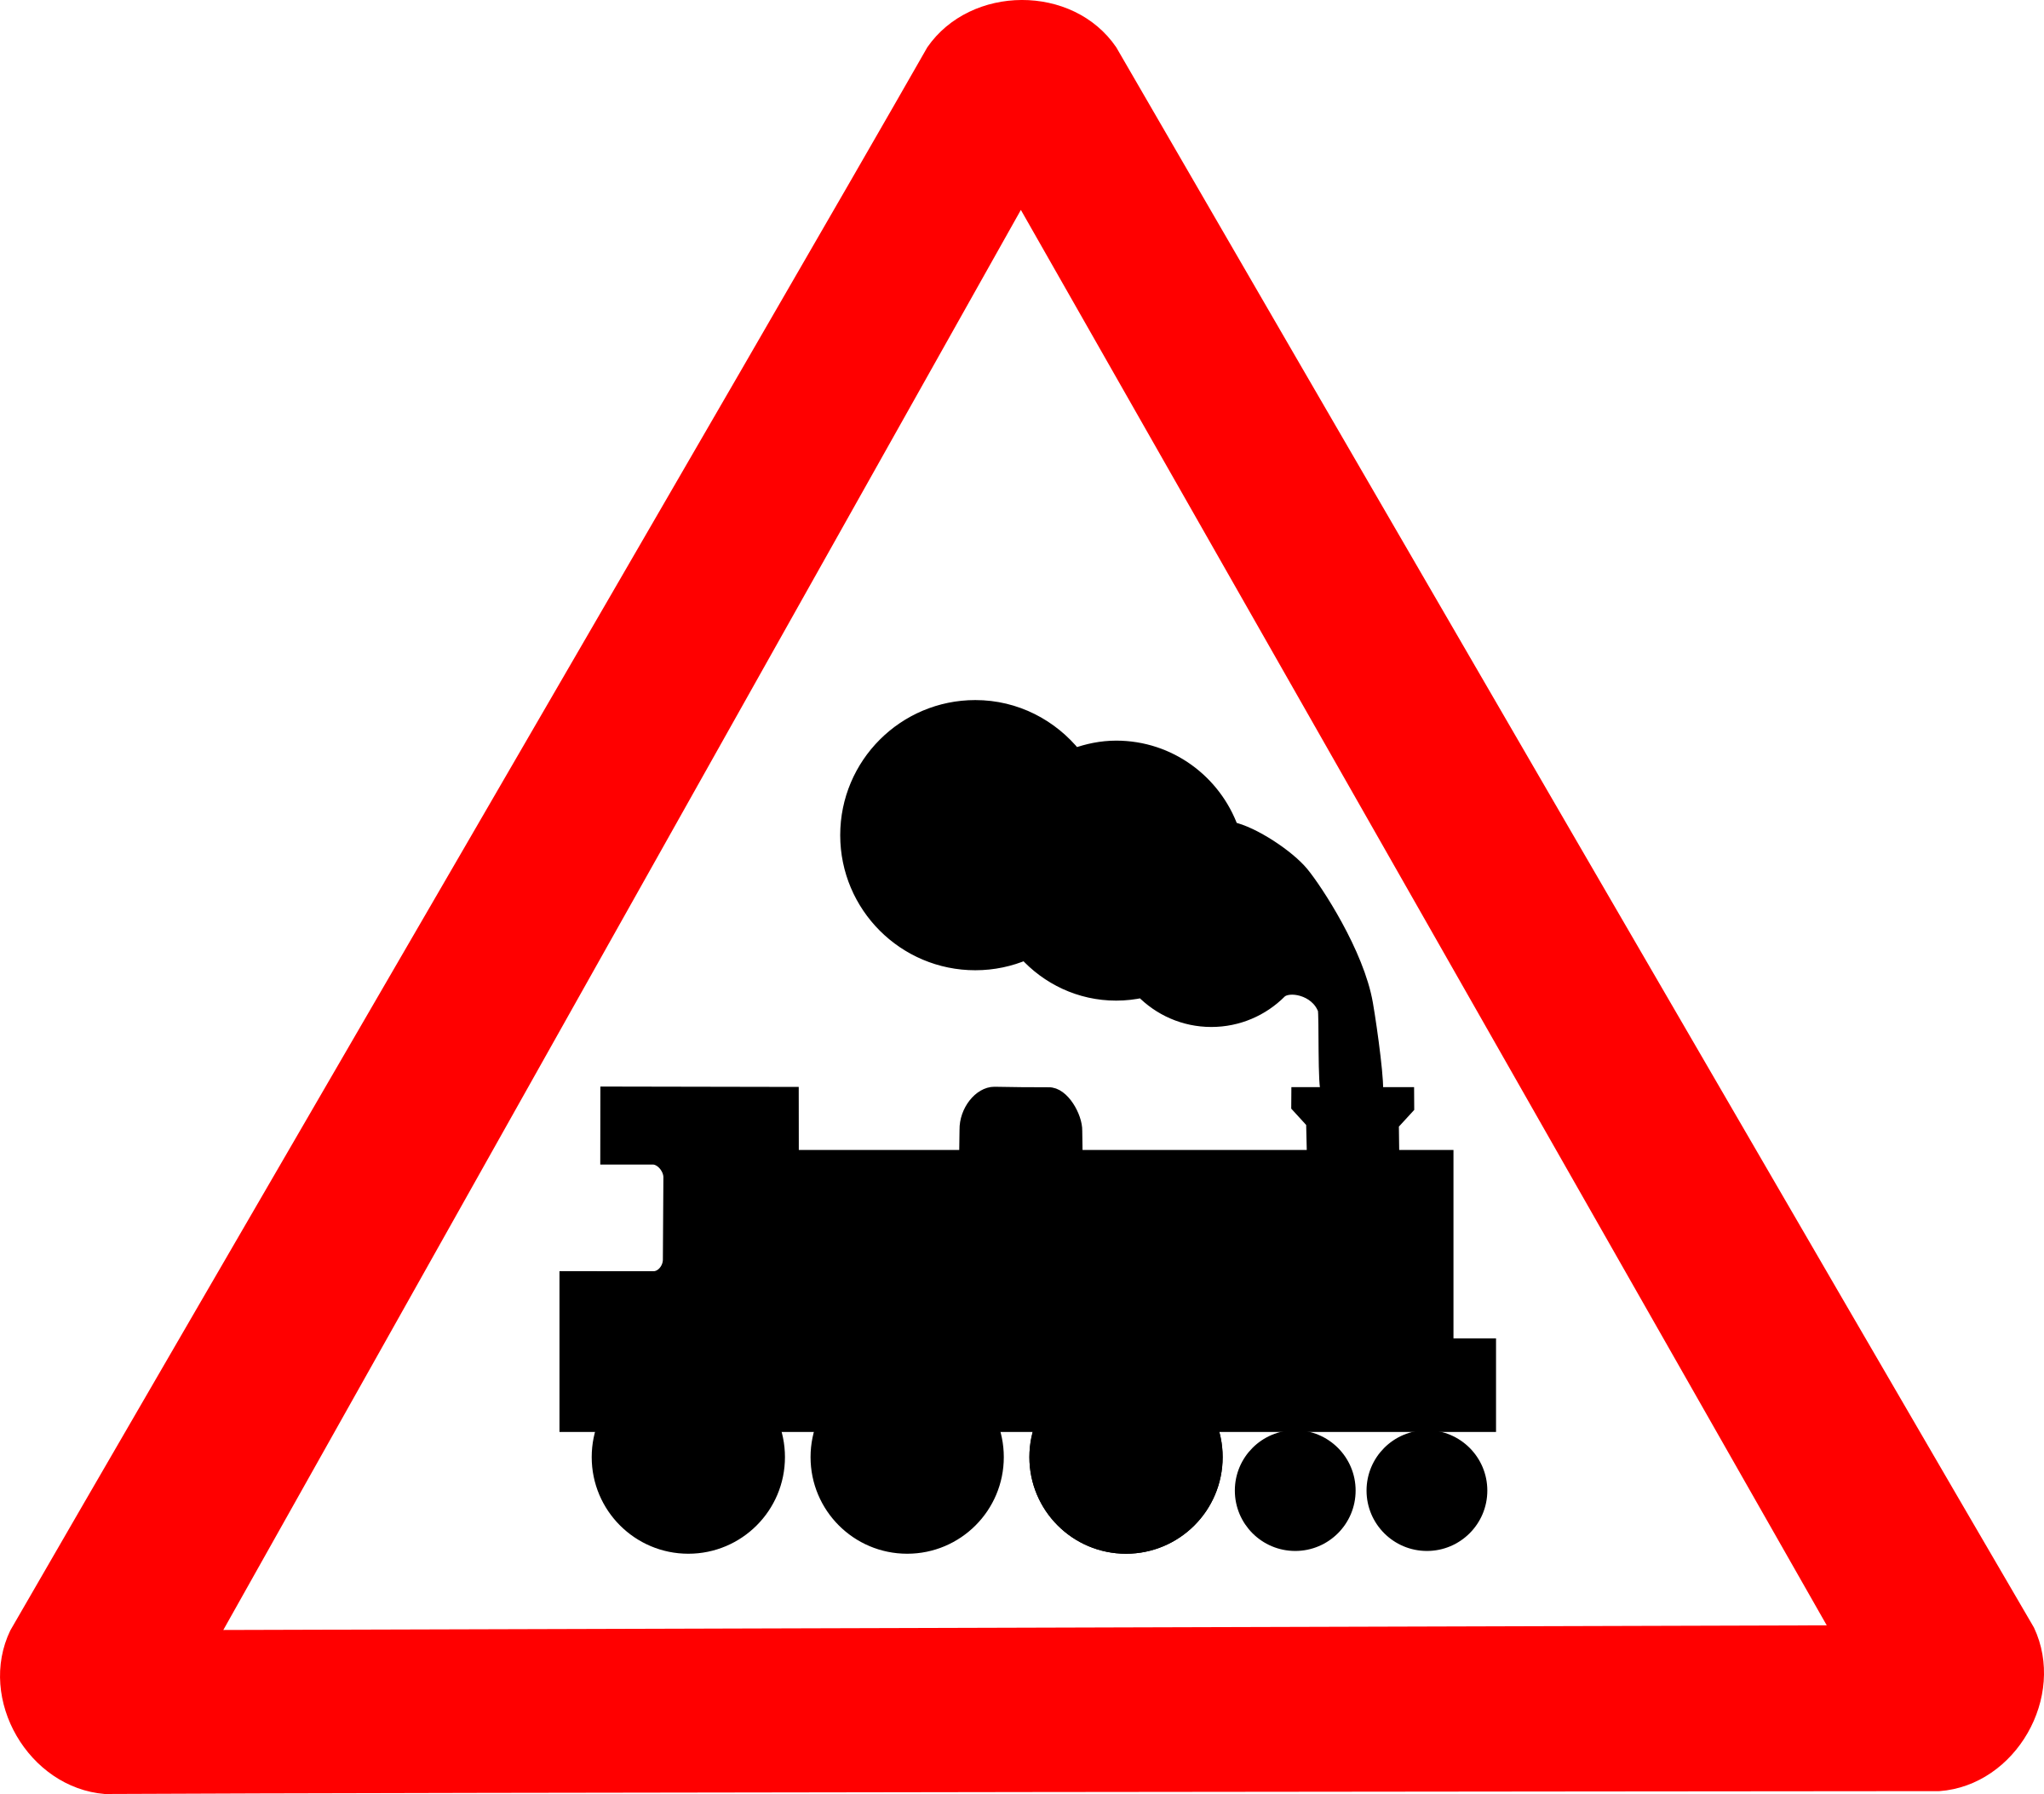 Clipart train icon. Roadsign icons png free